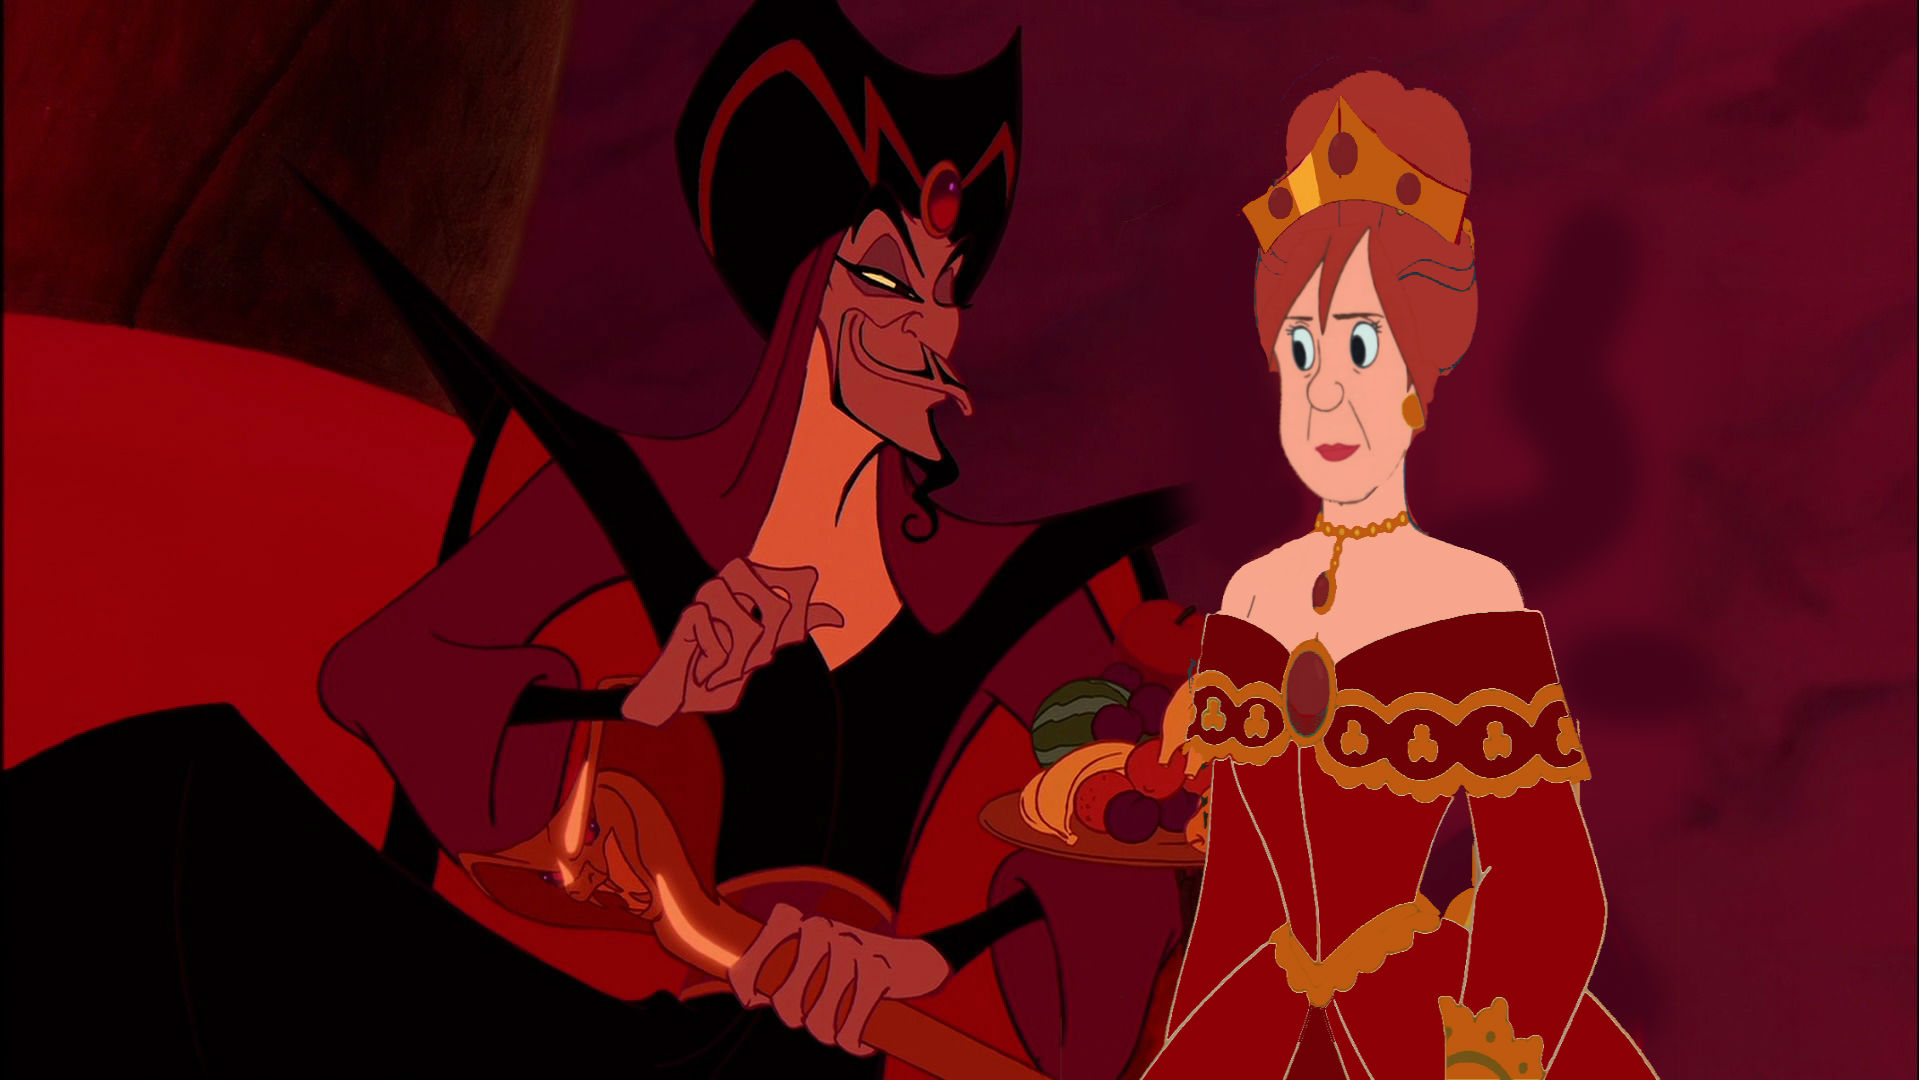 Công chúa Anastasia Tremaine and Jafar as their Once Upon A Time In Wonderland counterparts